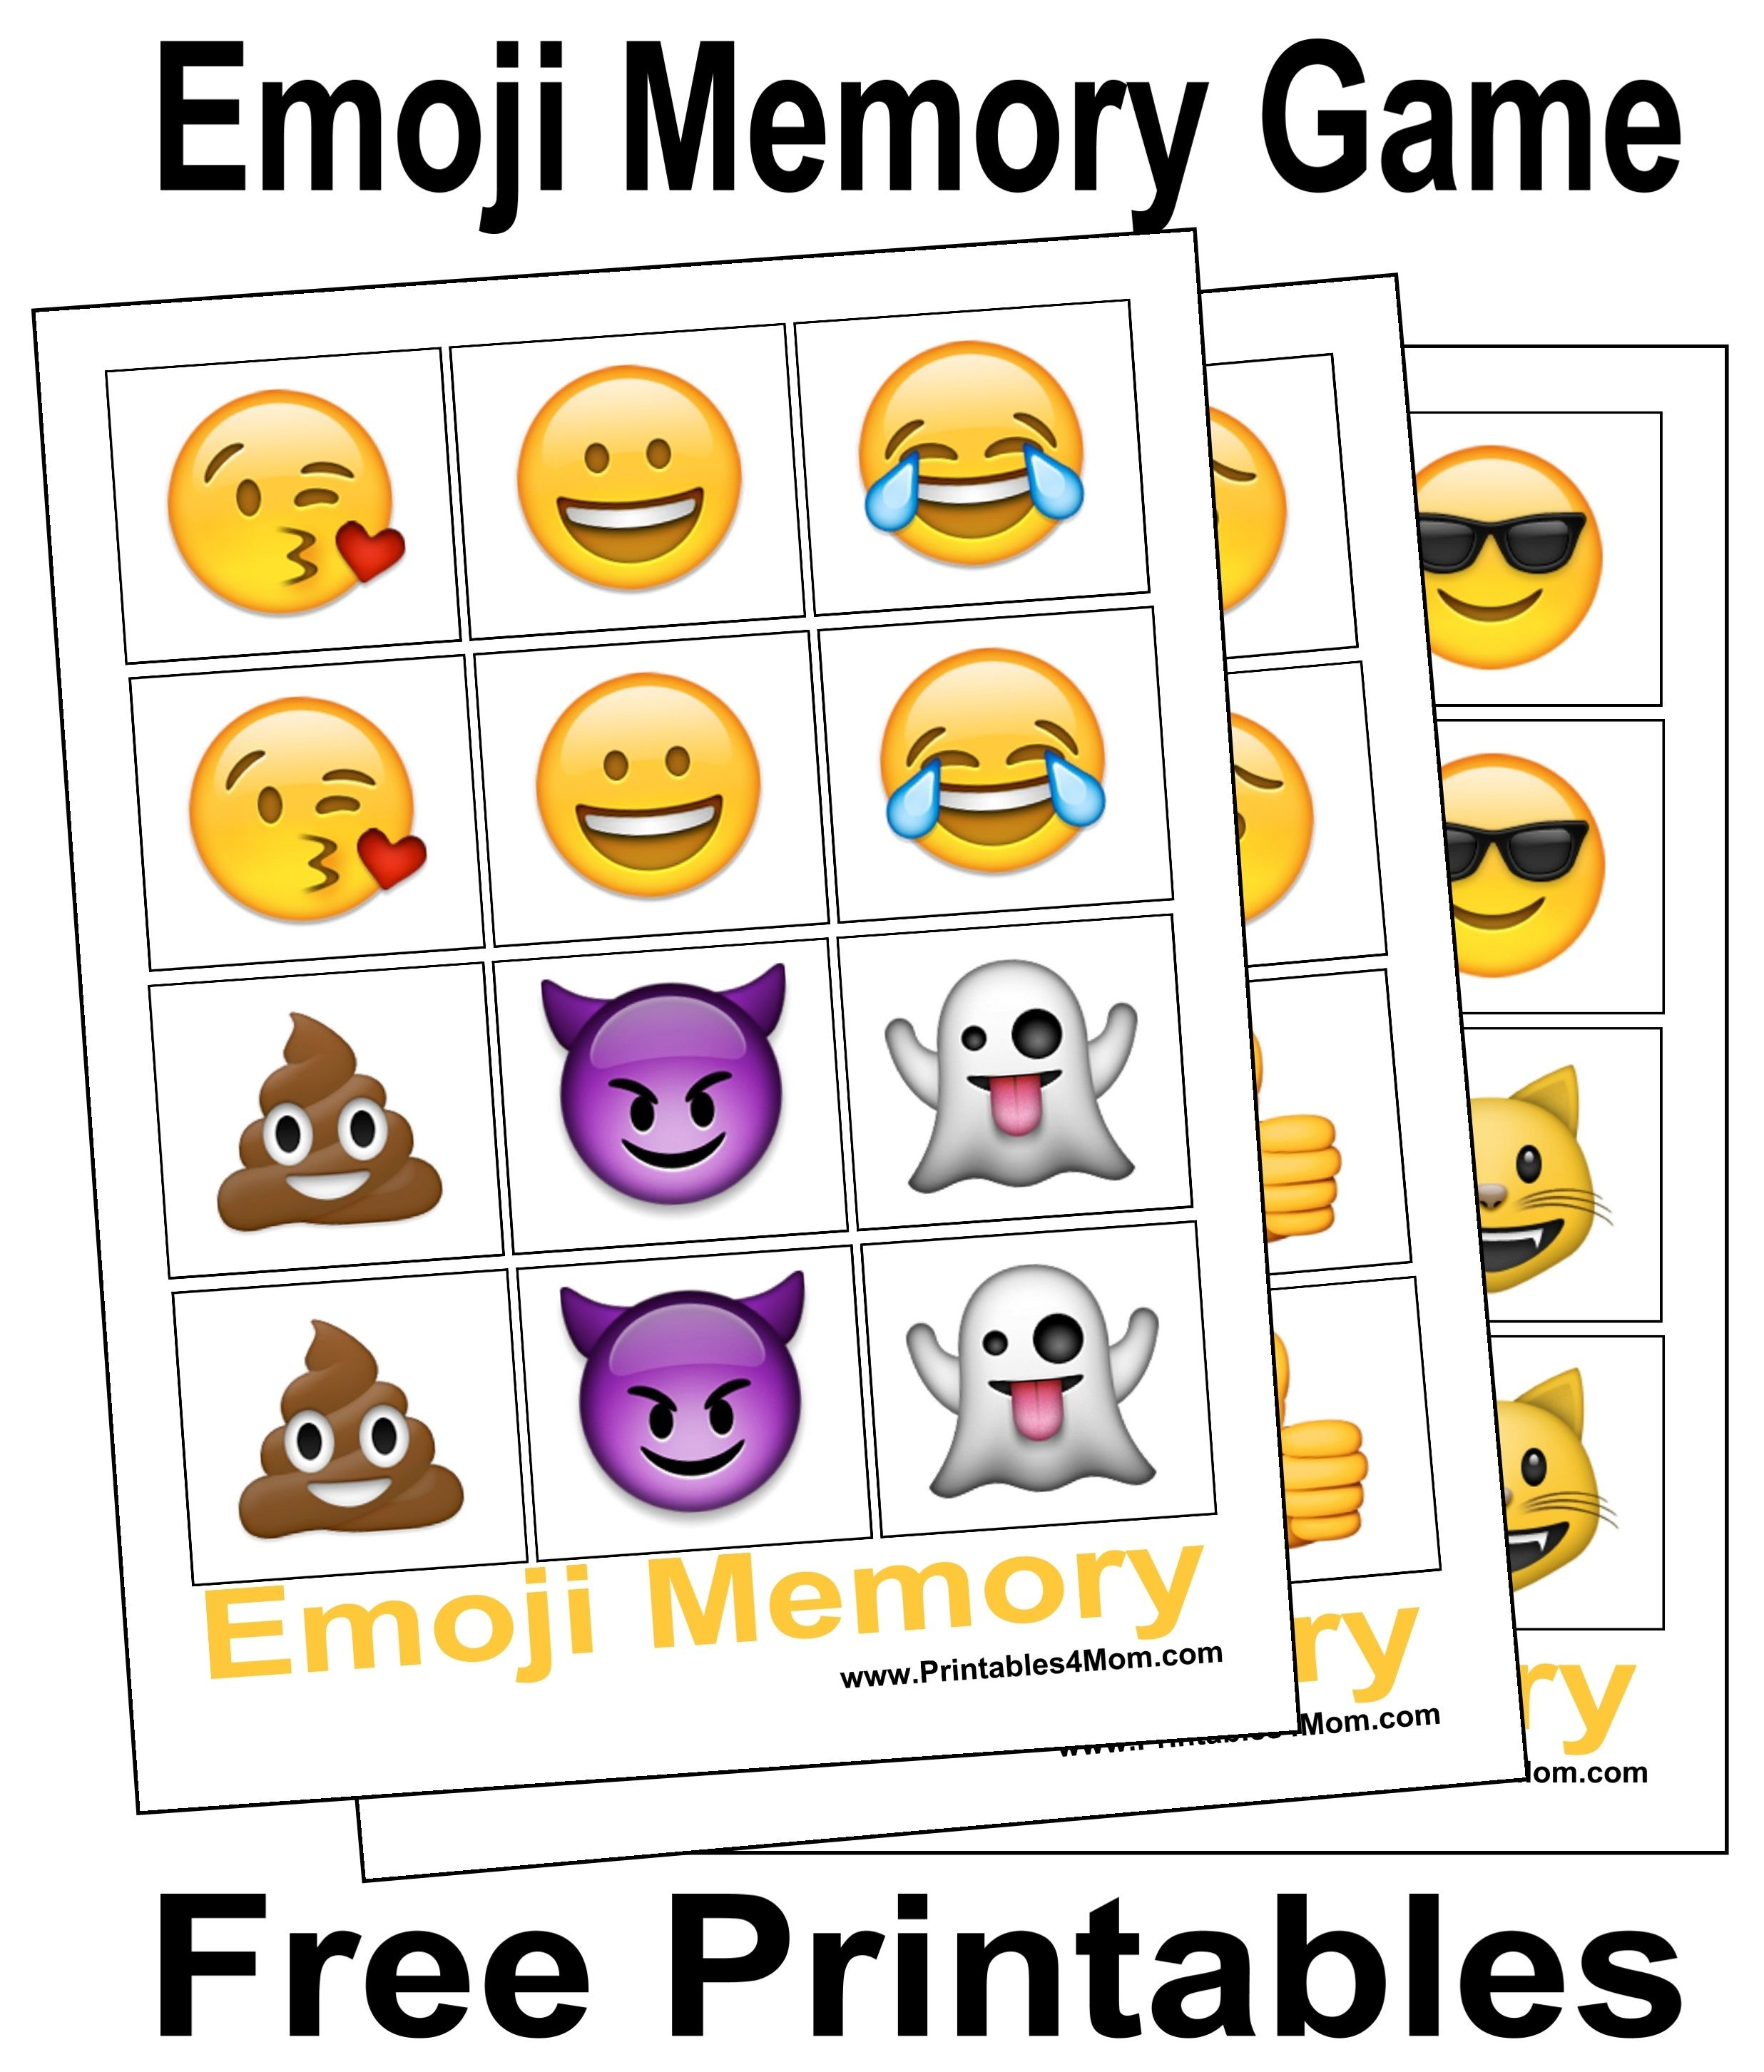 10 Free Last Minute Printable Stocking Stuffer Games I Just Discovered The Greatest Thing Ever Scotch Self Sealing Laminating Pouches